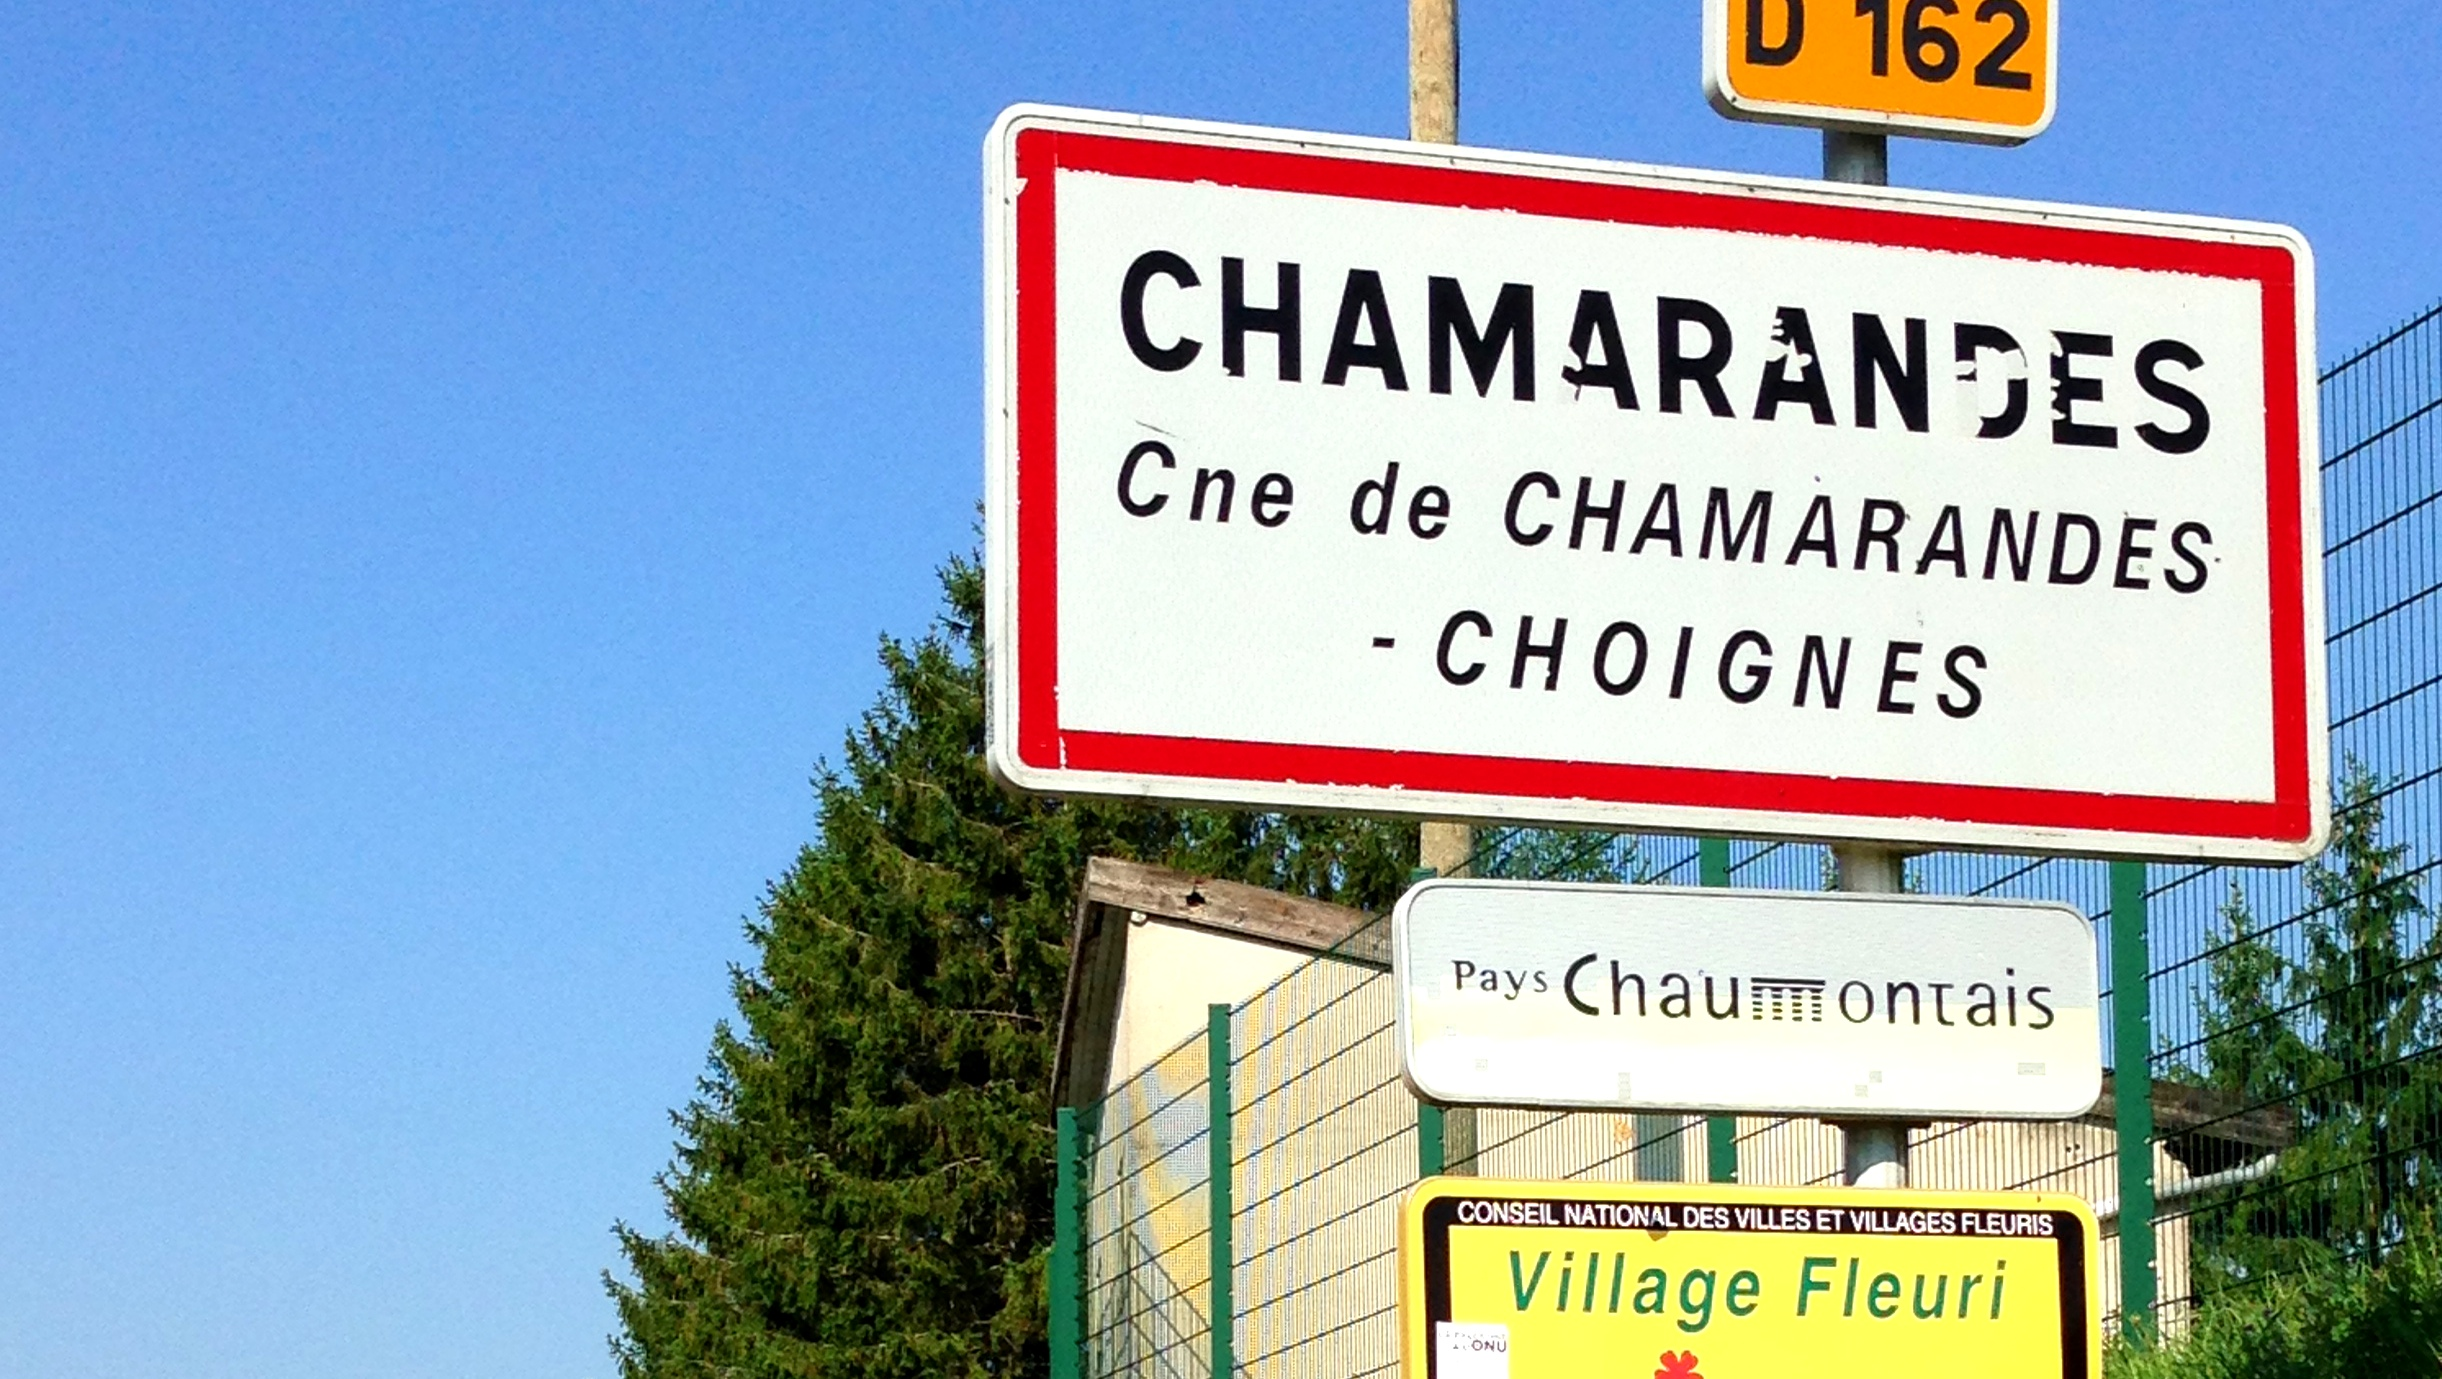 Introduction to Chaumont